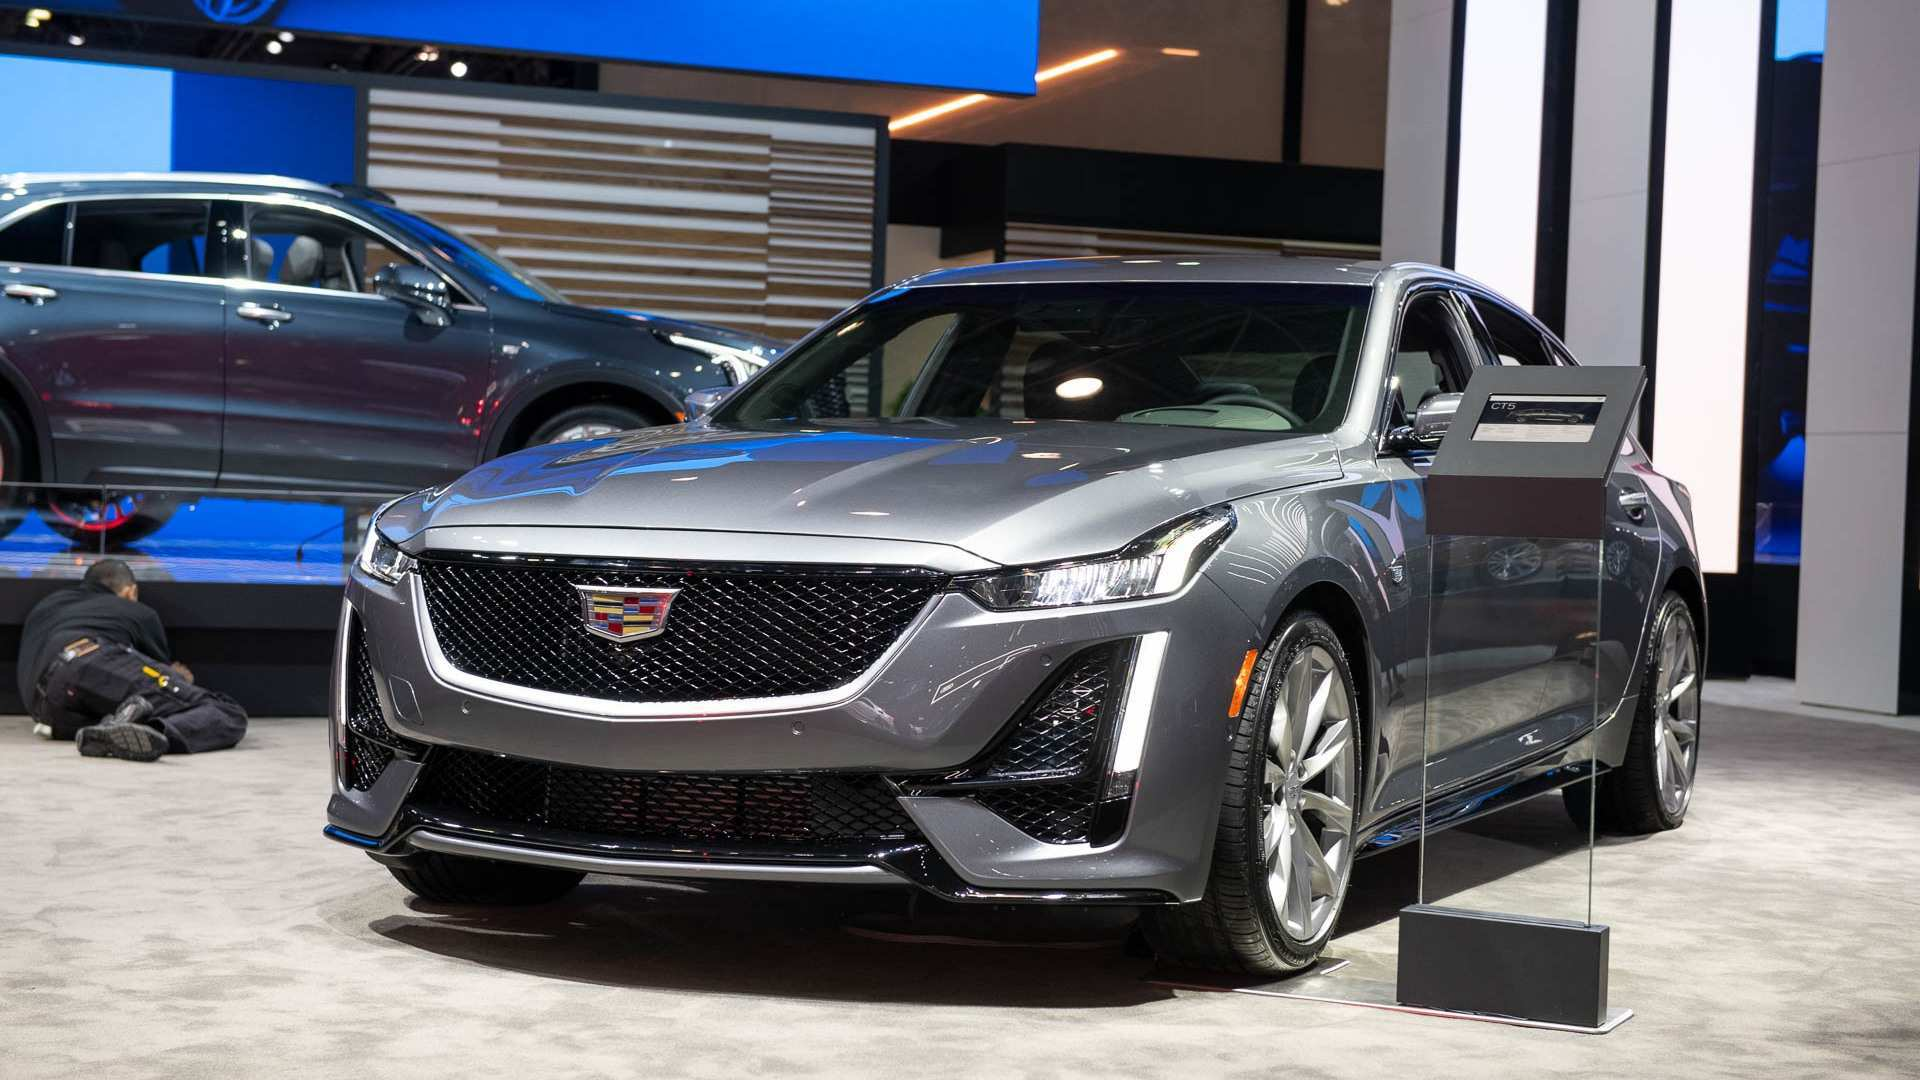 72 All New 2020 Cadillac Cars Style